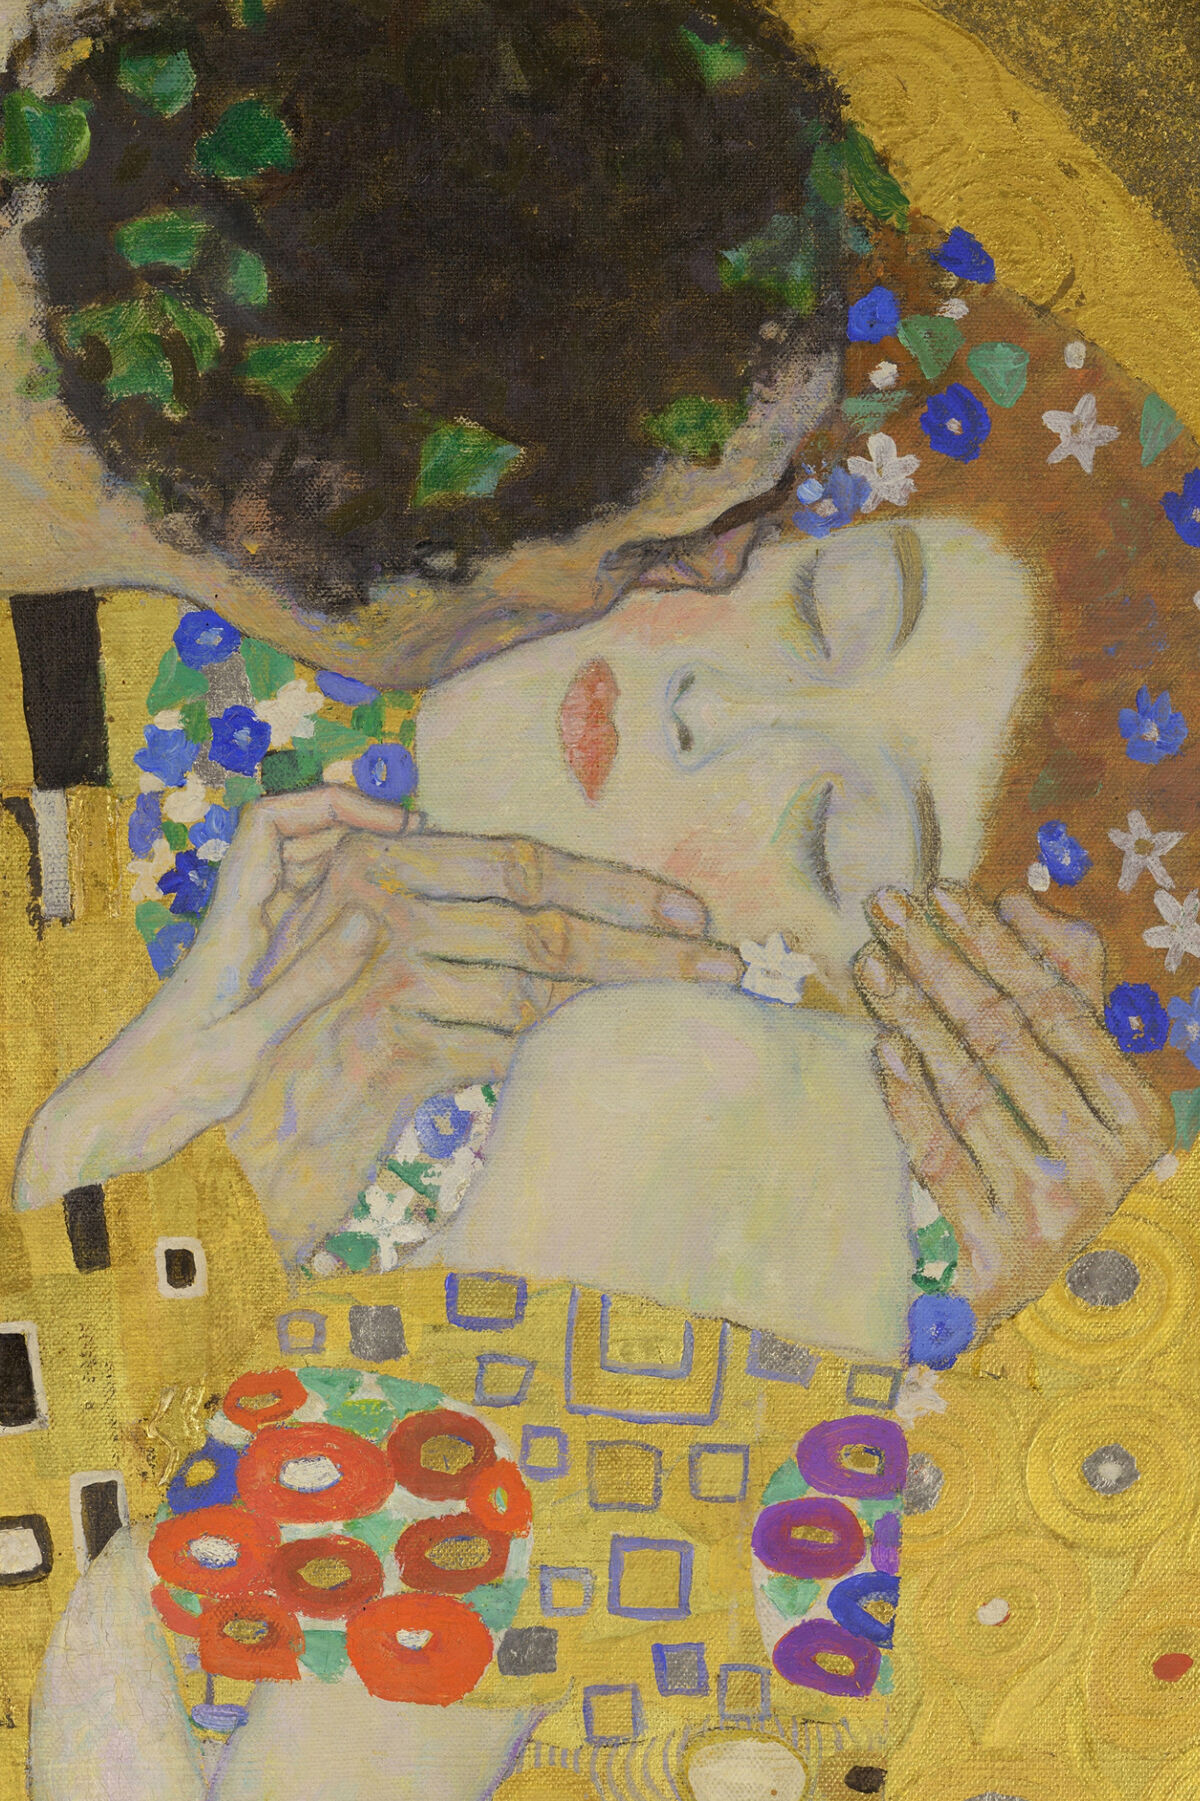 Gustav Klimt, The Kiss (details), 1907. Image via Wikimedia Commons.